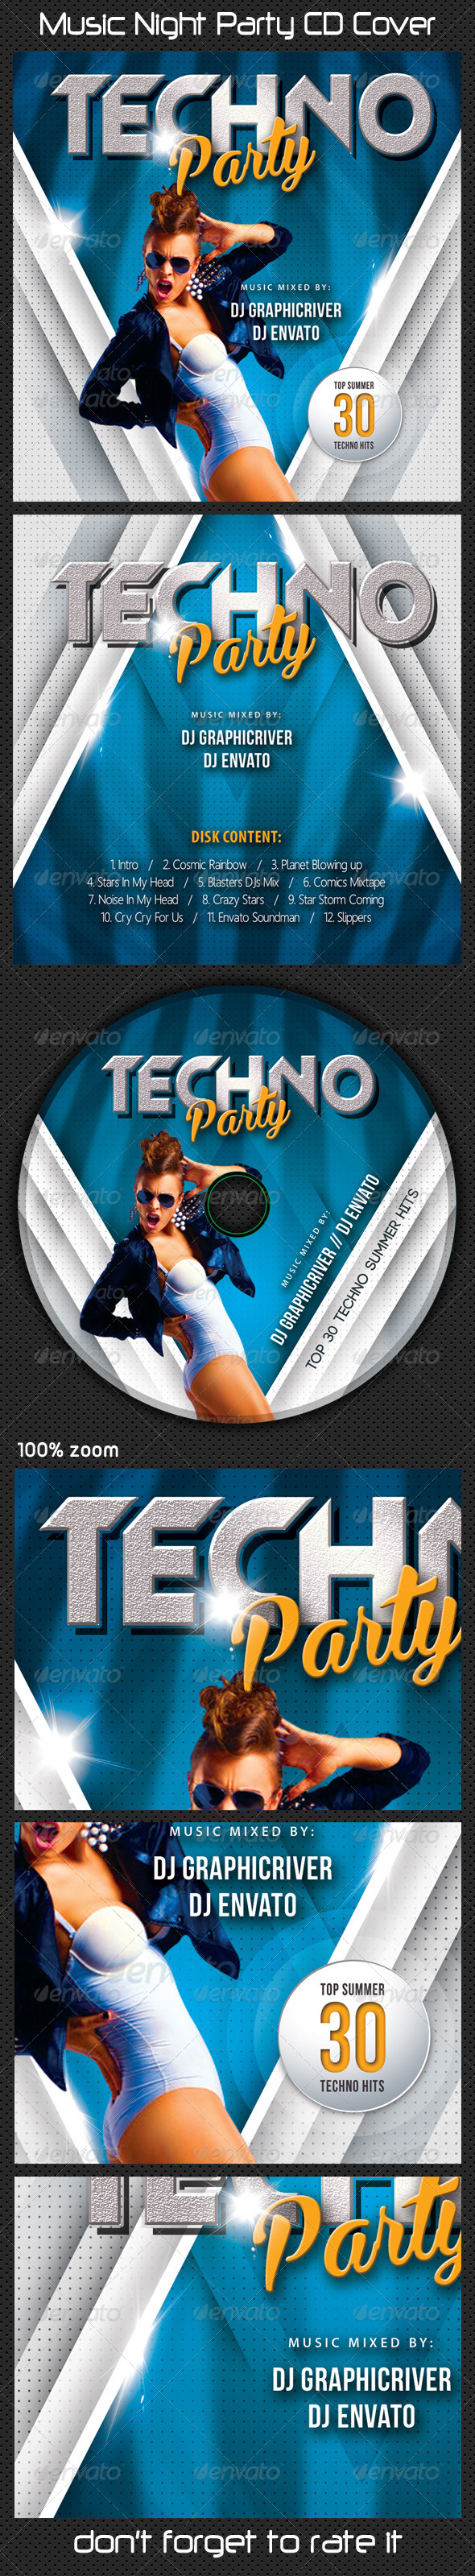 GraphicRiver Music Night Party CD Cover 09 8524194